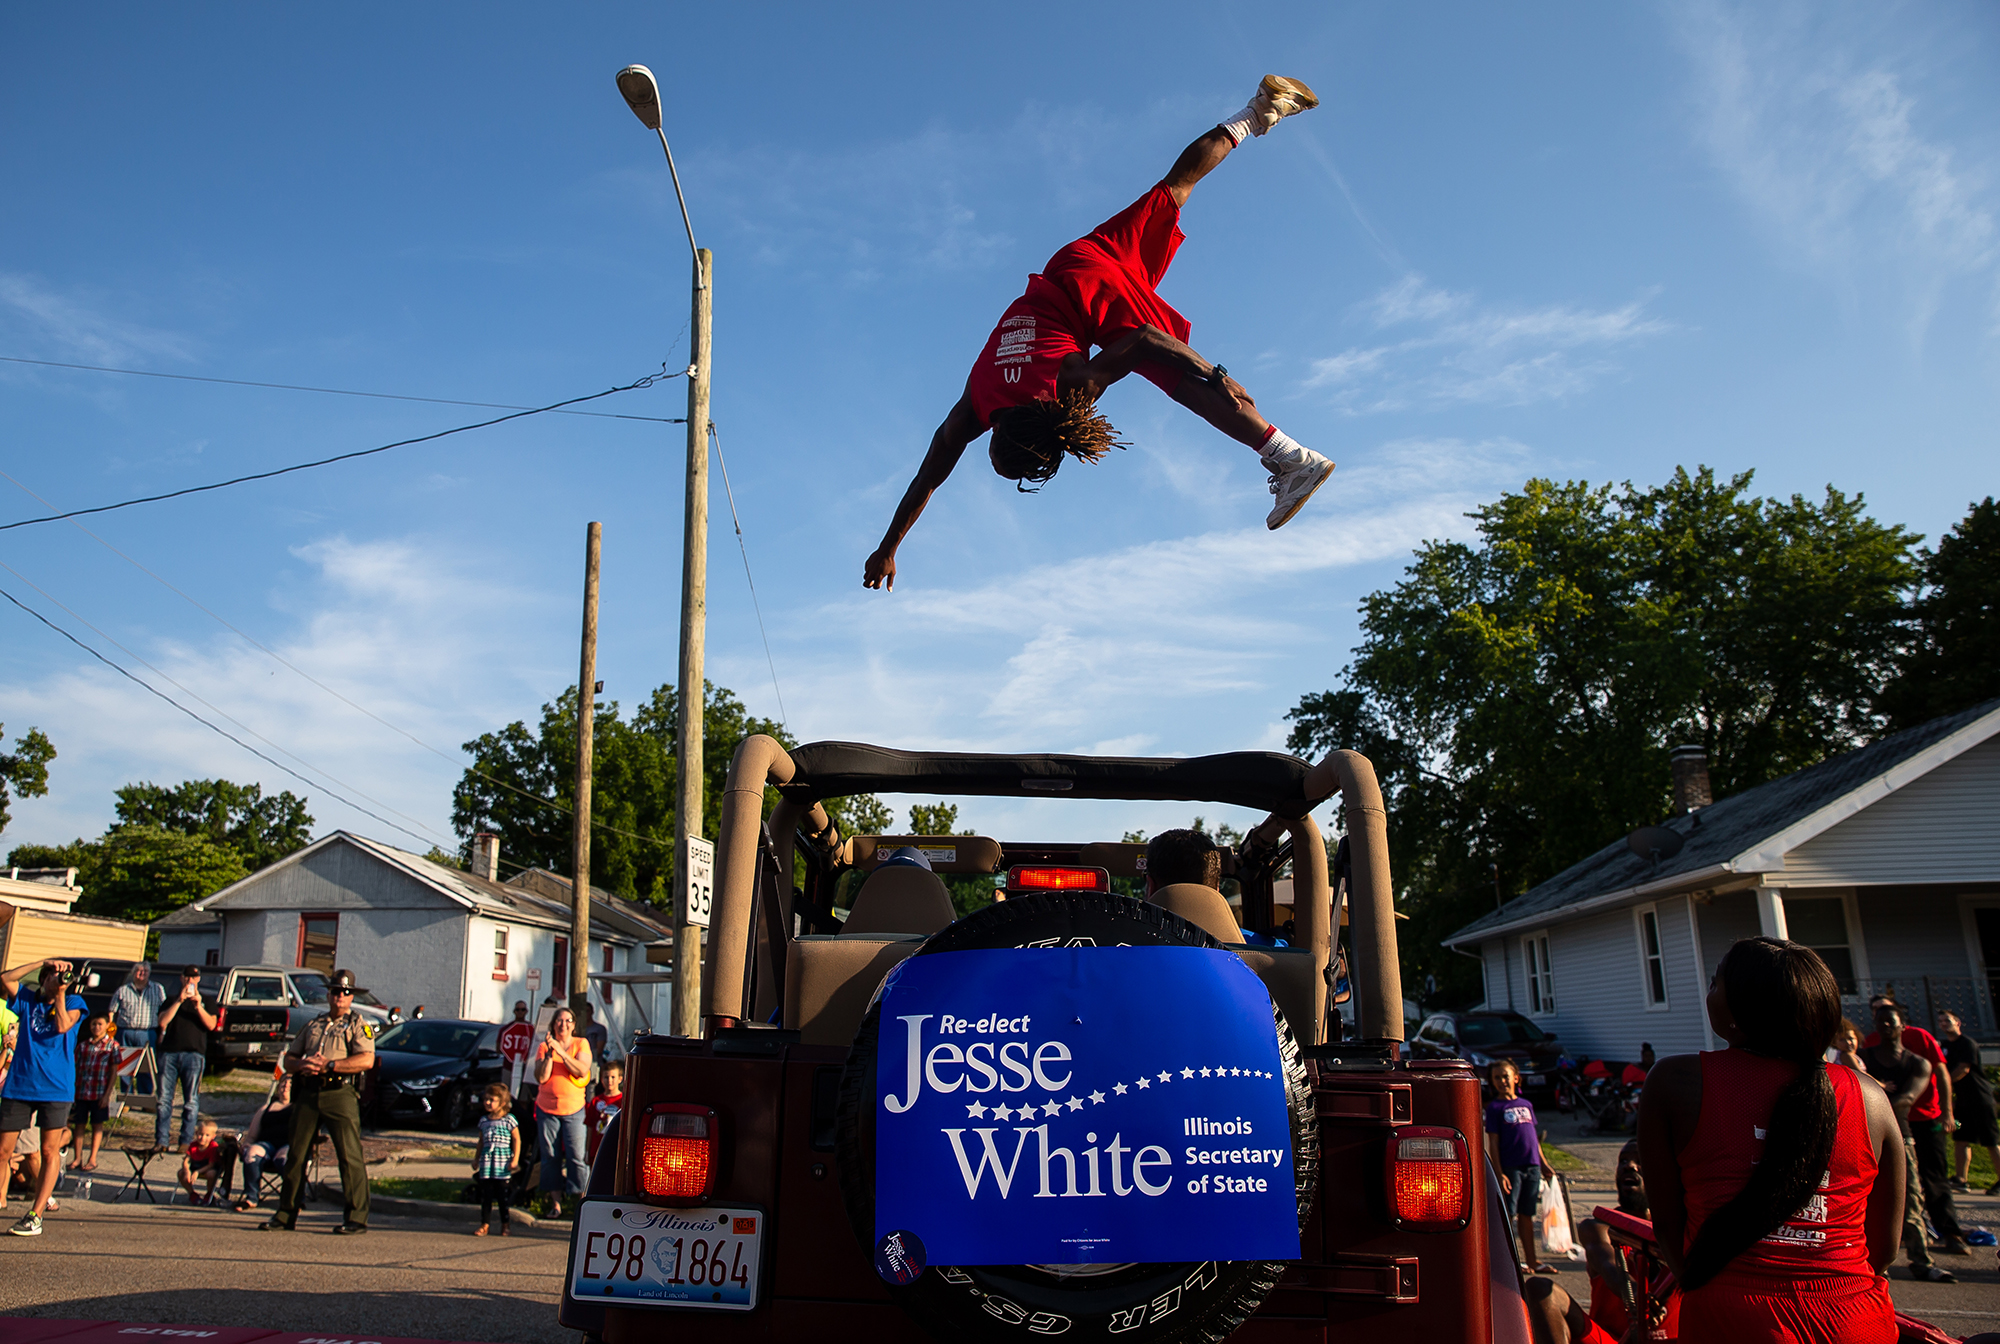 Corey Bell, of Chicago, Ill., leaps over a Jeep Wrangler as he performs with Illinois Secretary of State Jesse White and the Tumblers during the Illinois State Fair Twilight Parade, Thursday, Aug. 9, 2018, in Springfield, Ill. [Justin L. Fowler/The State Journal-Register]